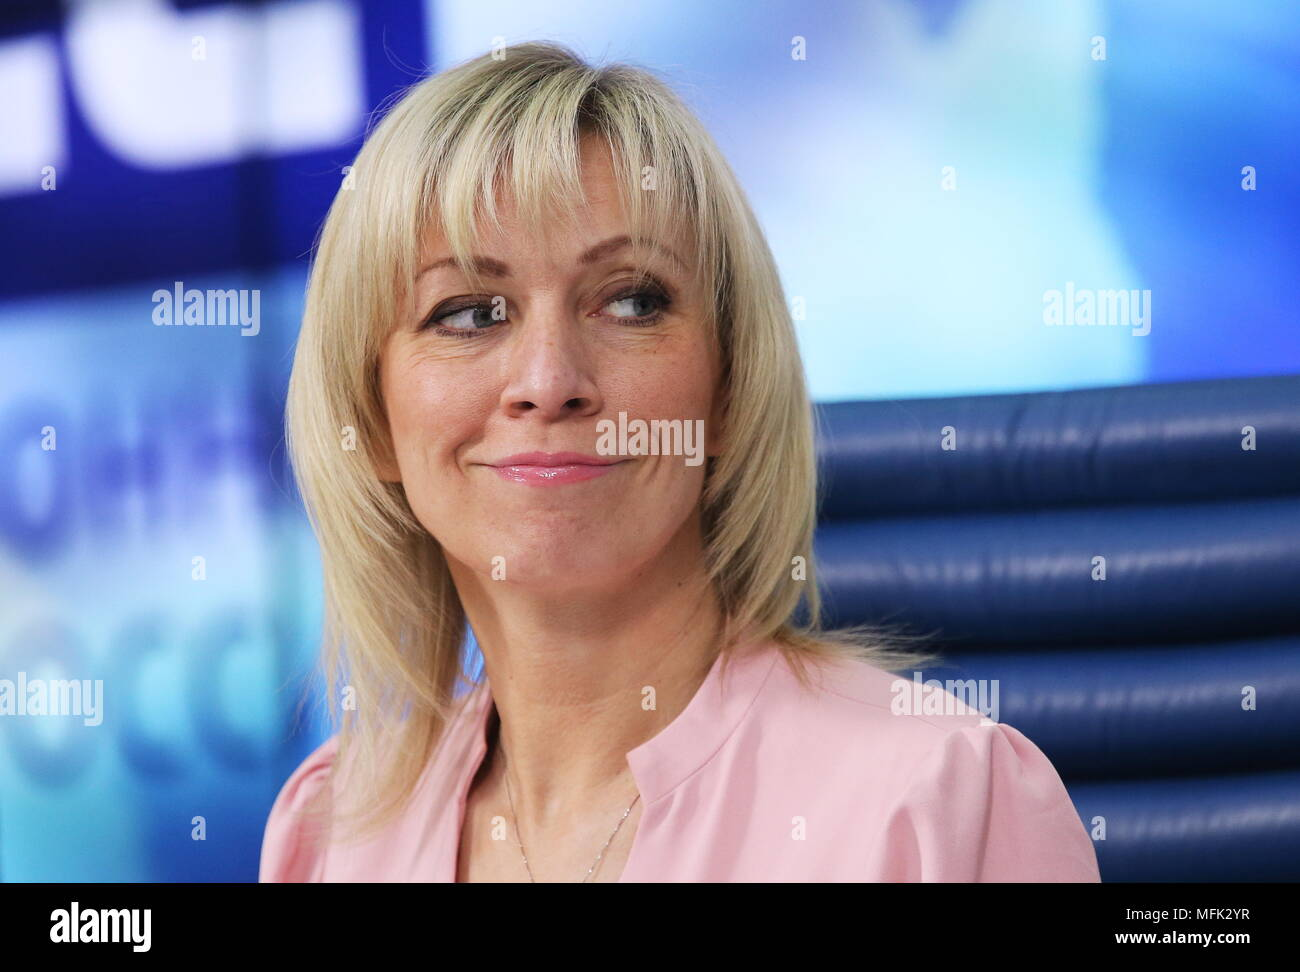 MOSCOW, RUSSIA - APRIL 26, 2018: The spokeswoman for Russia's